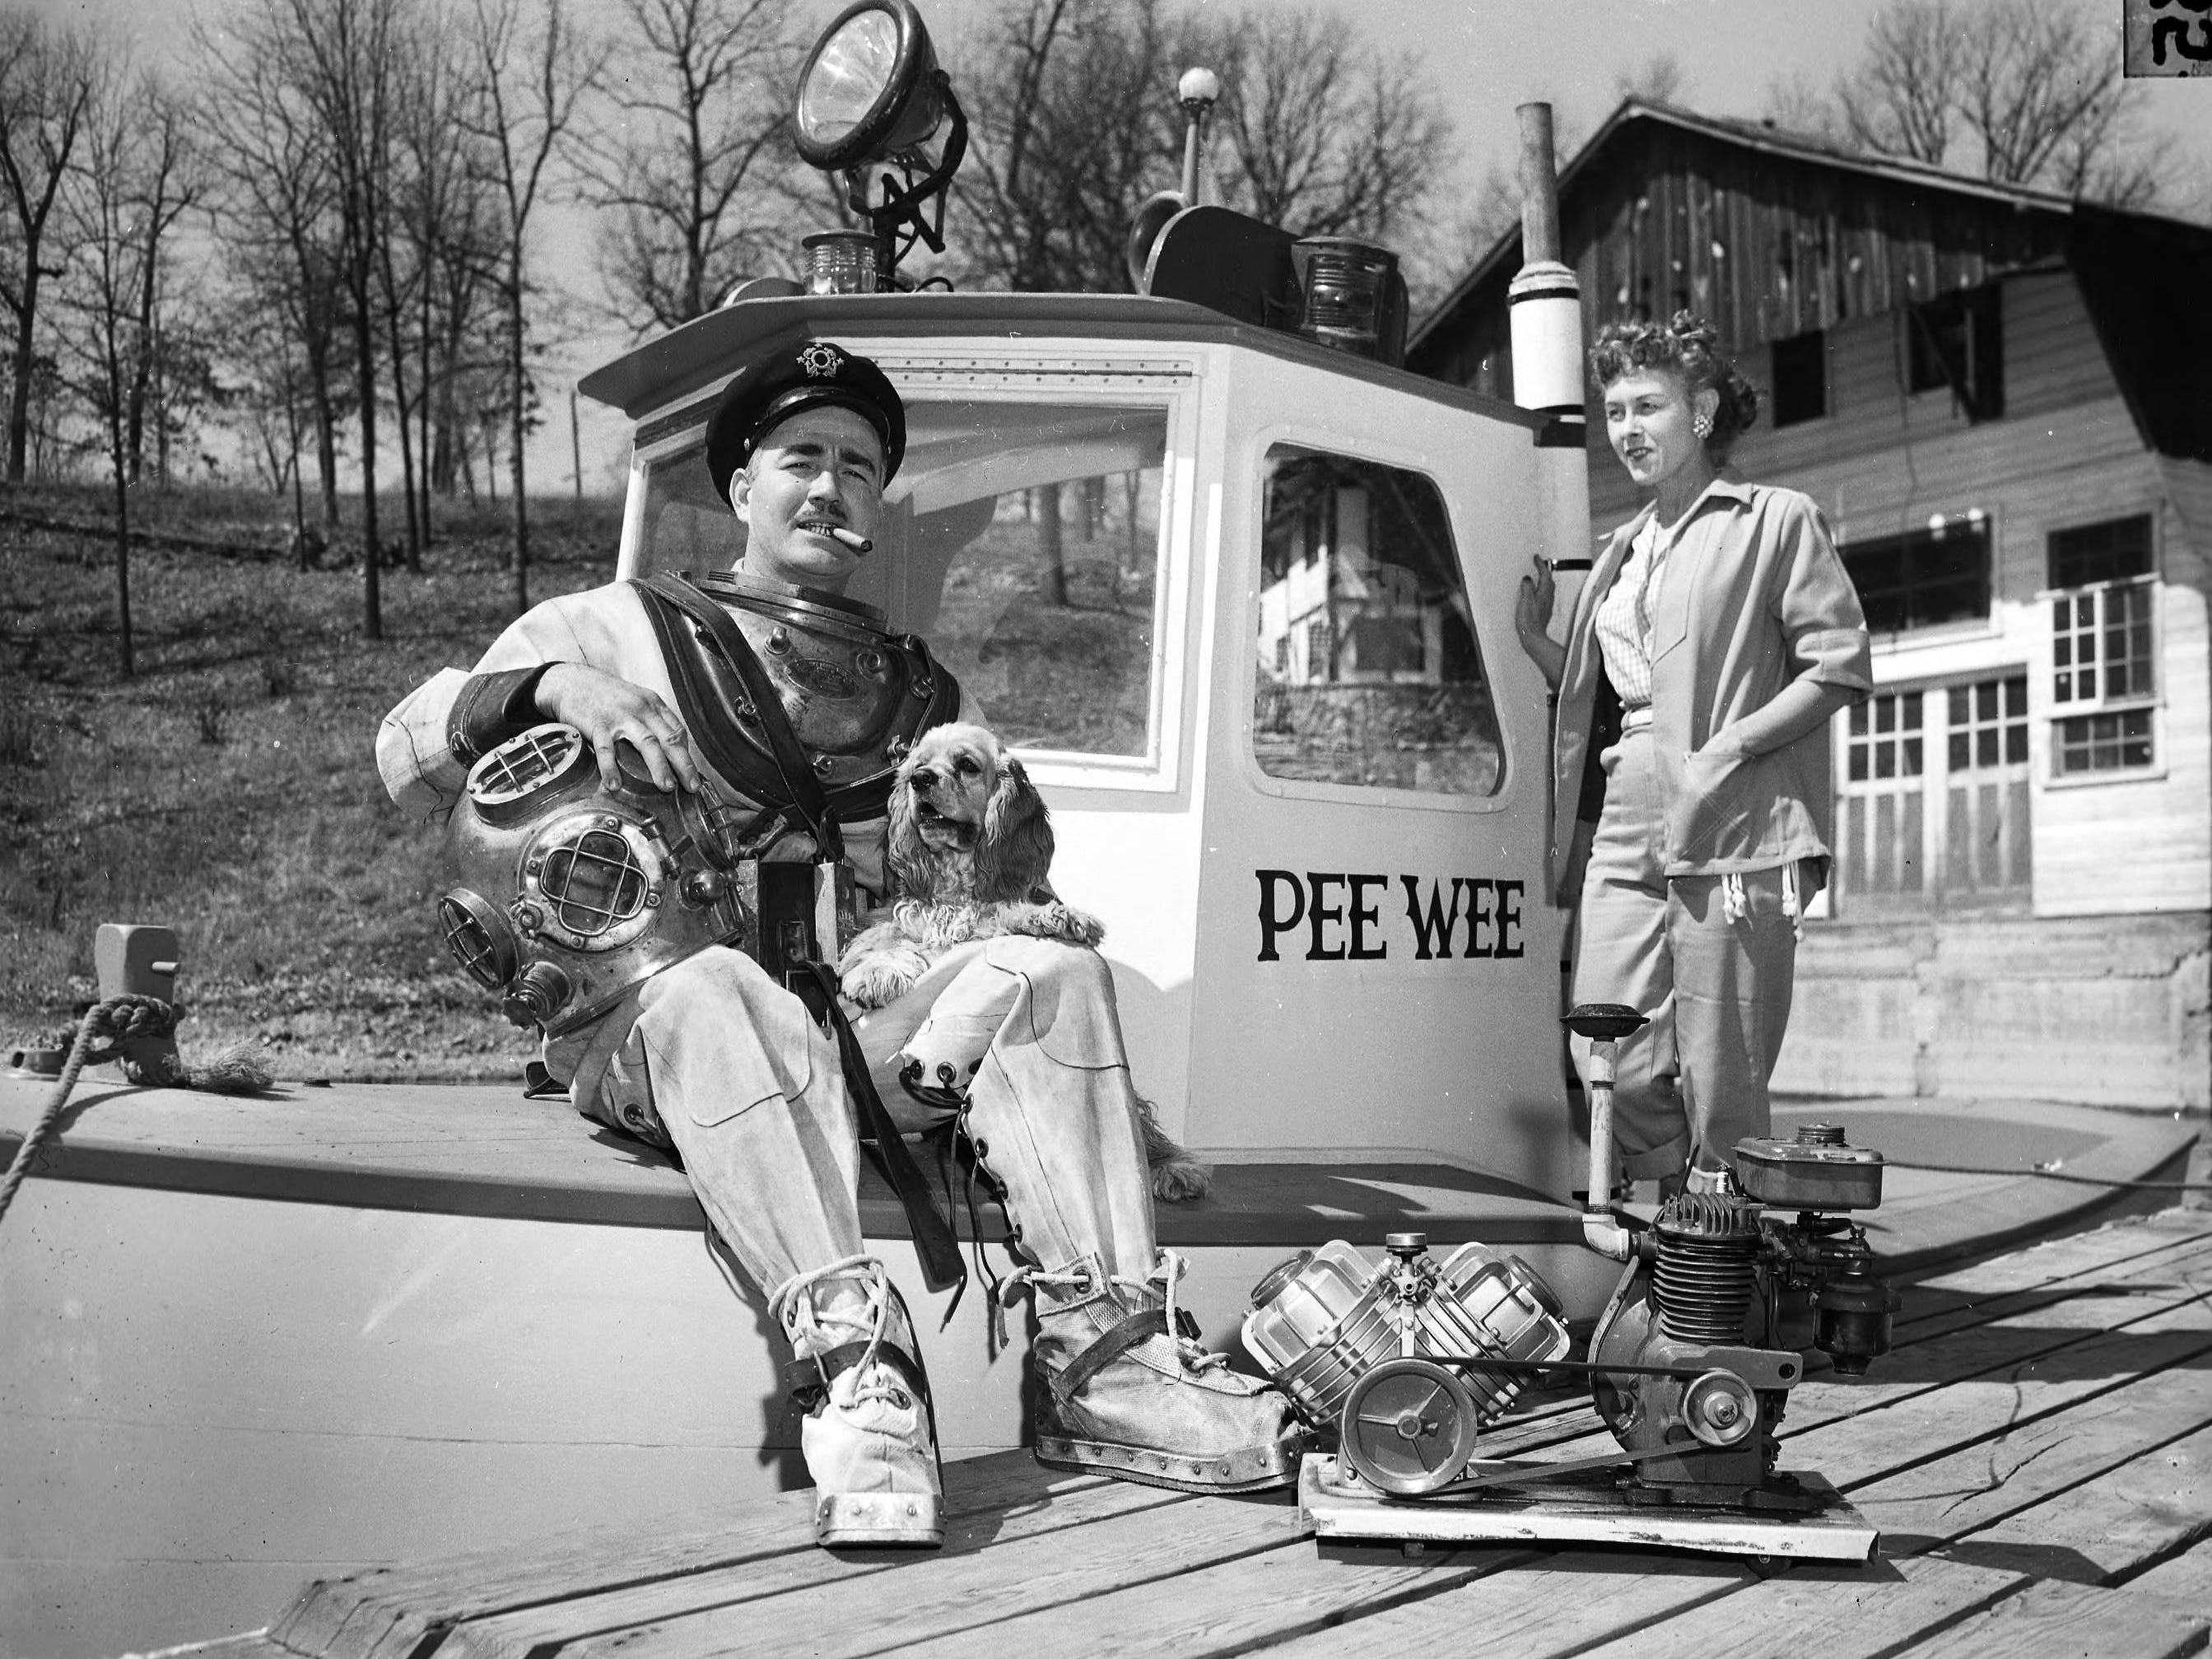 The boat named PeeWee with an unidentified man in diving gear, a woman, and a dog at the Arrowhead Yacht Club in 1955.